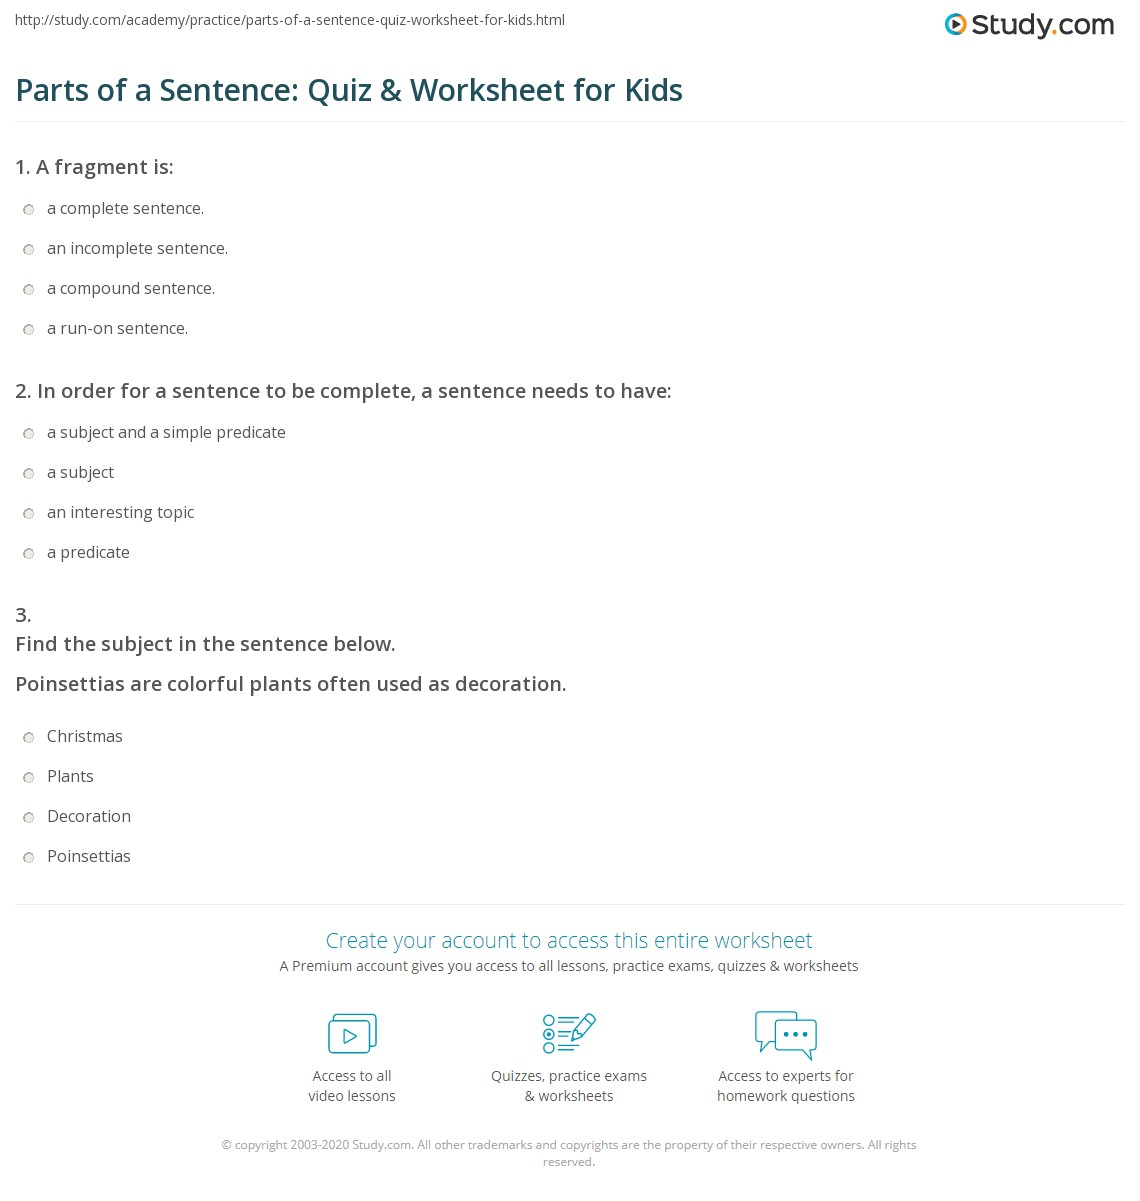 worksheet Parts Of A Sentence Worksheet parts of a sentence quiz worksheet for kids study com print lesson worksheet